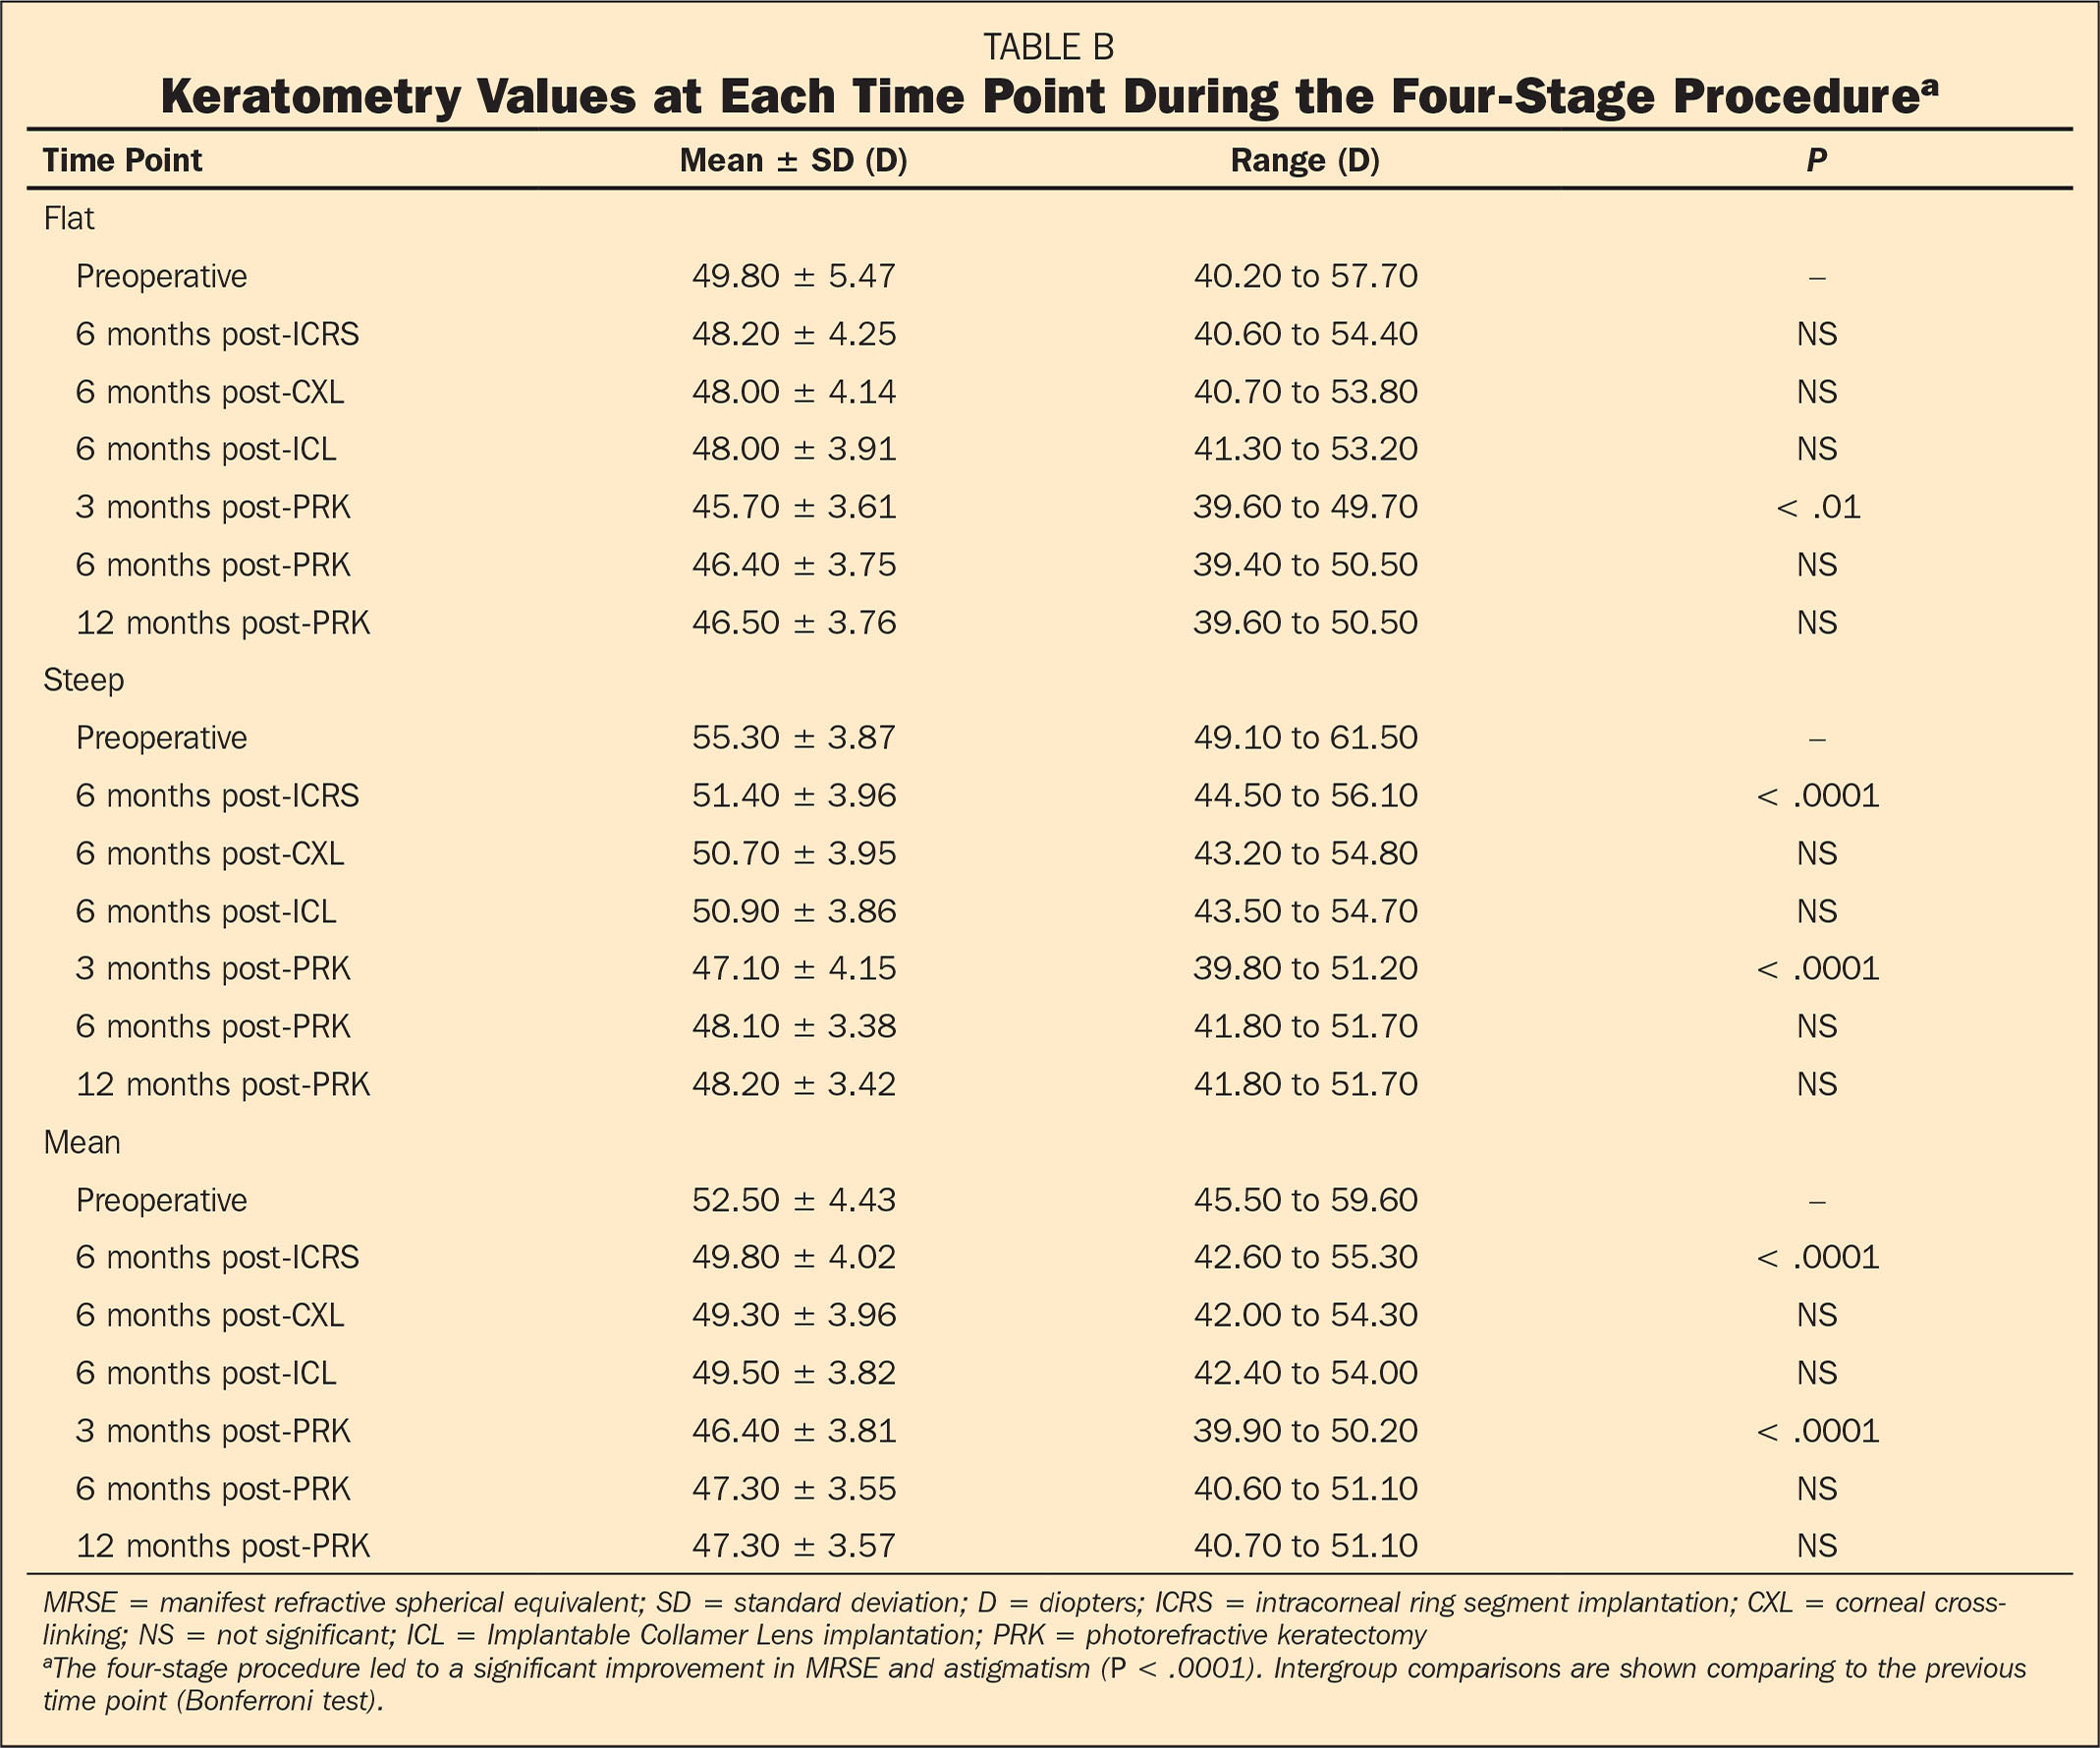 Keratometry Values at Each Time Point During the Four-Stage Procedurea